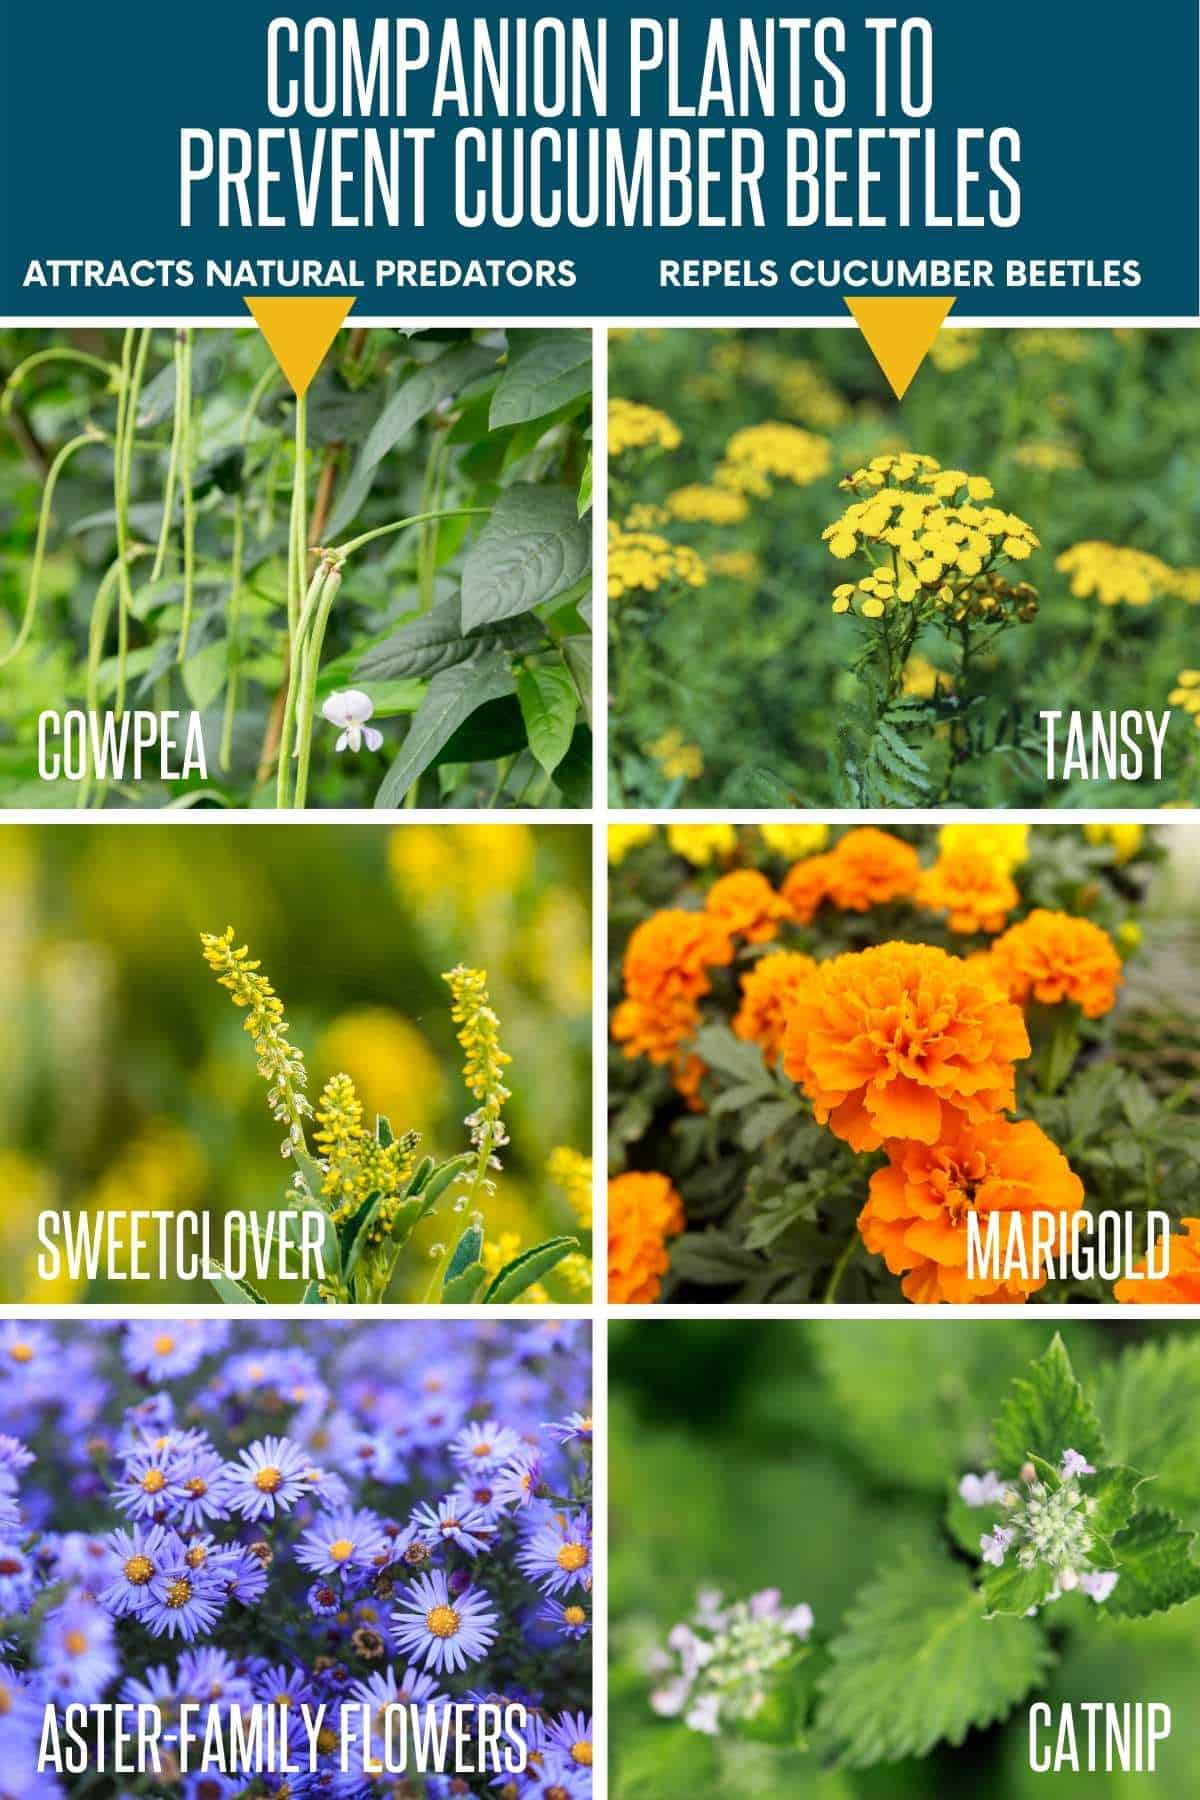 A divided image shows companion plants that can help prevent a cucumber beetle infestation.